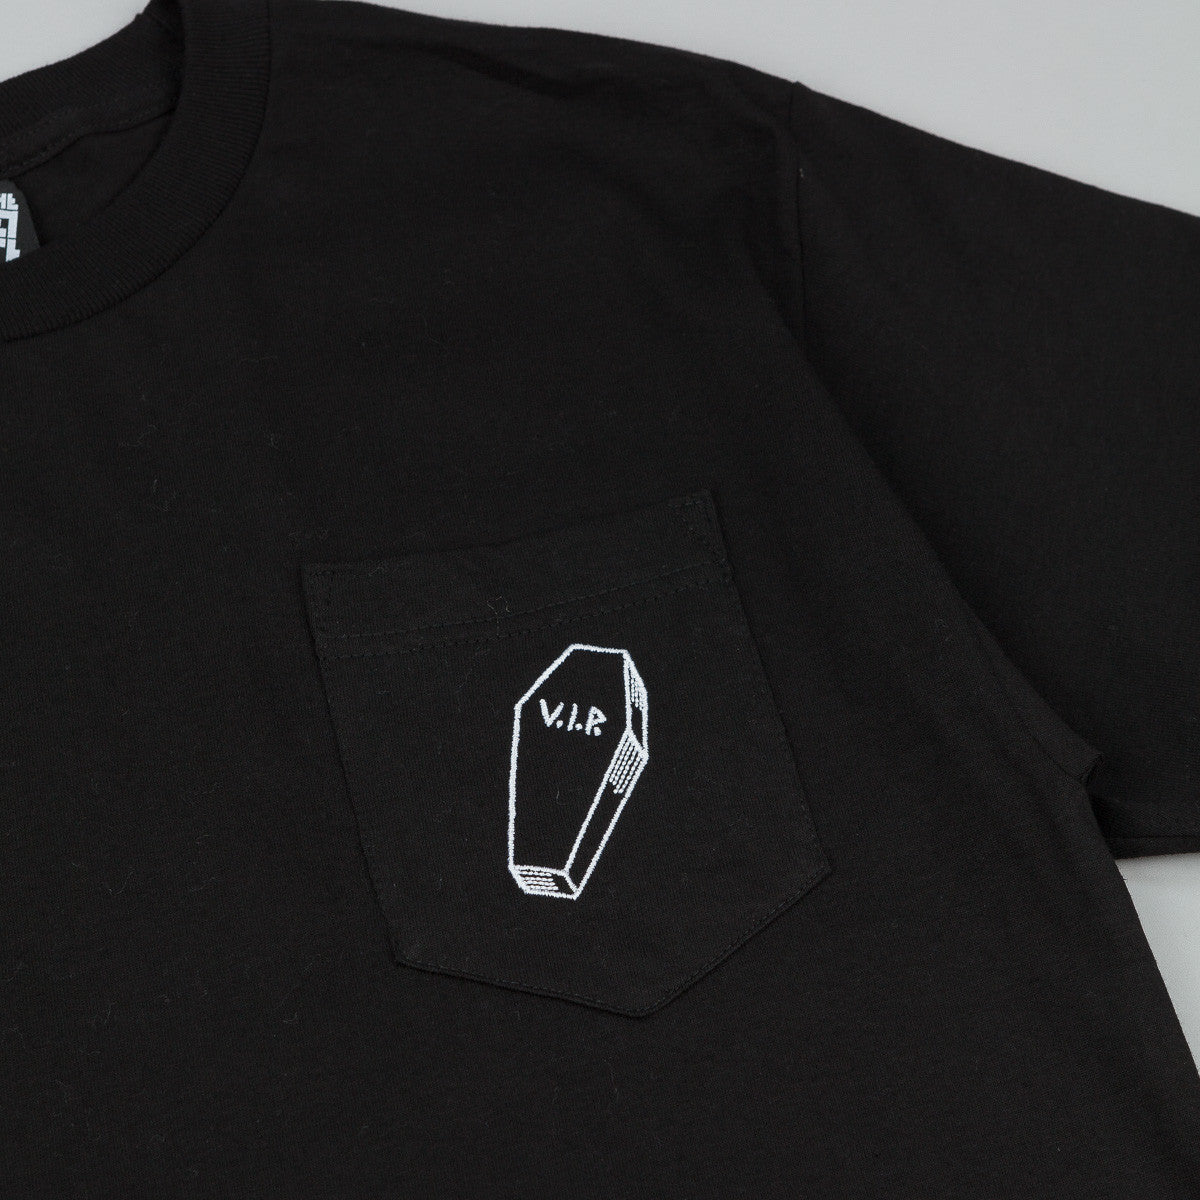 The Quiet Life VIP Embroidered Pocket T-Shirt - Black